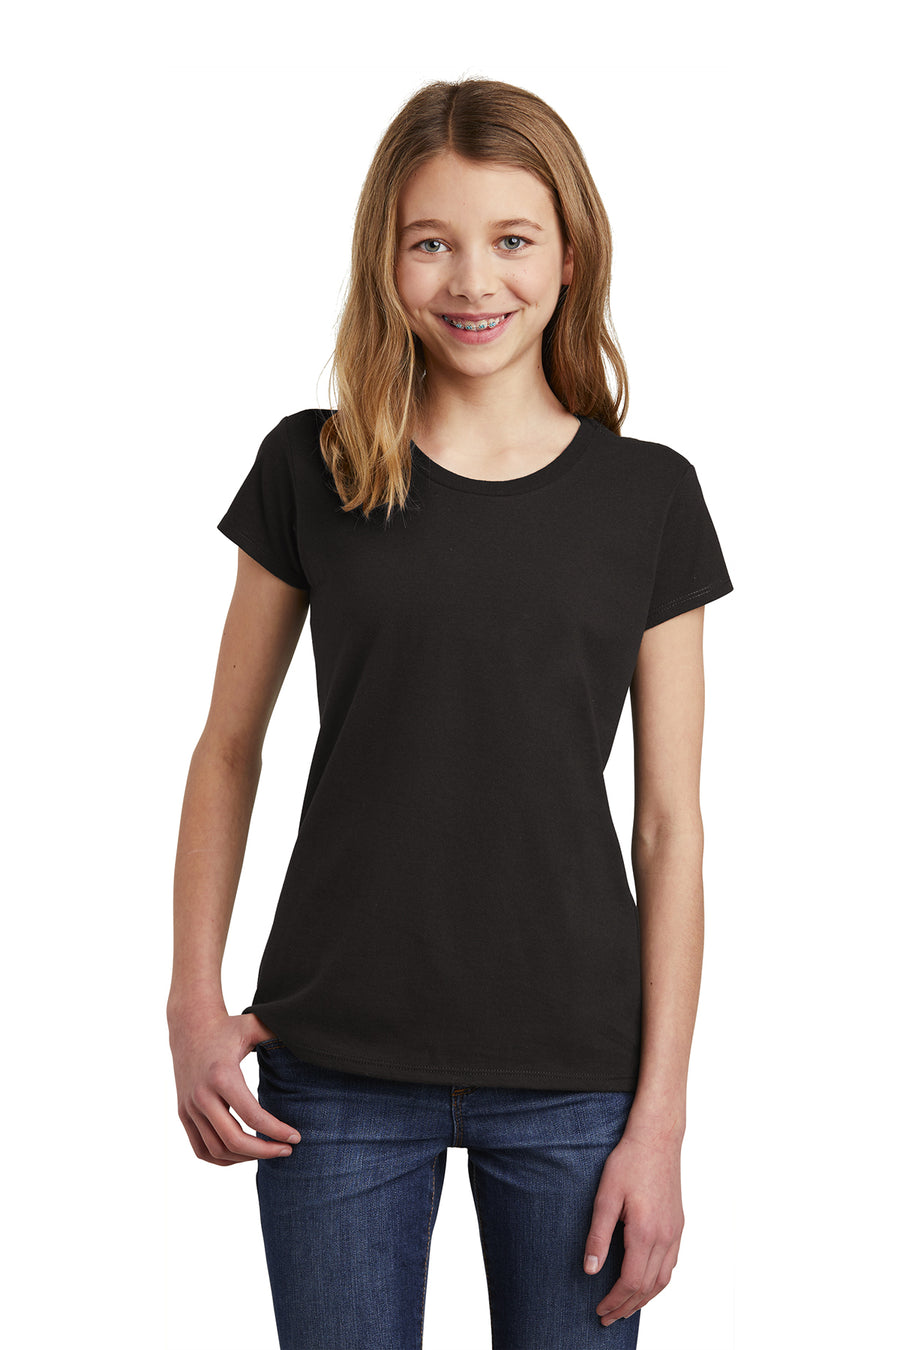 Chance by Design-Ladies V-Neck